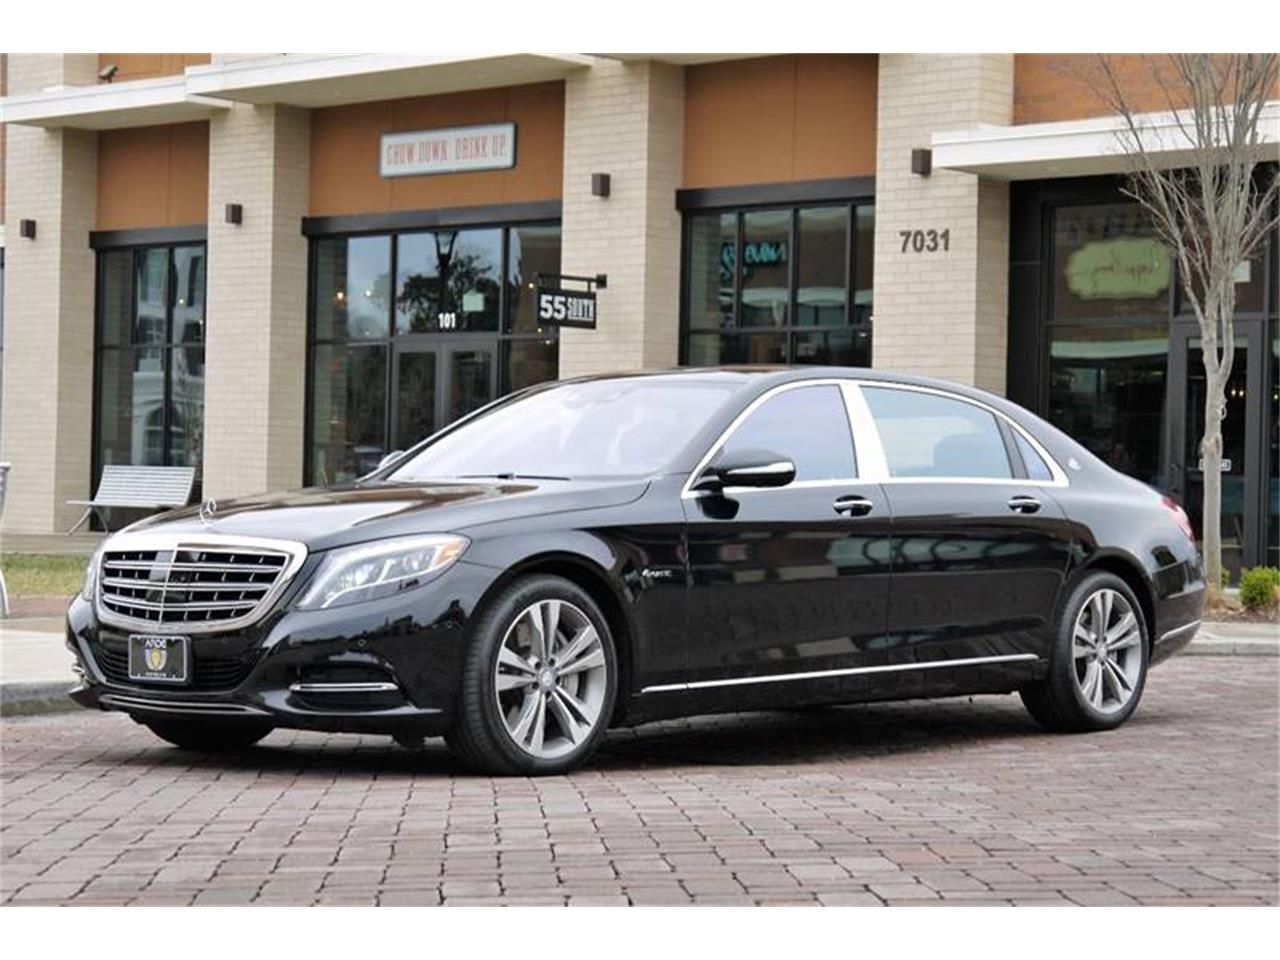 Large Picture of '17 Mercedes-Benz S-Class located in Brentwood Tennessee - $169,000.00 - MOD1